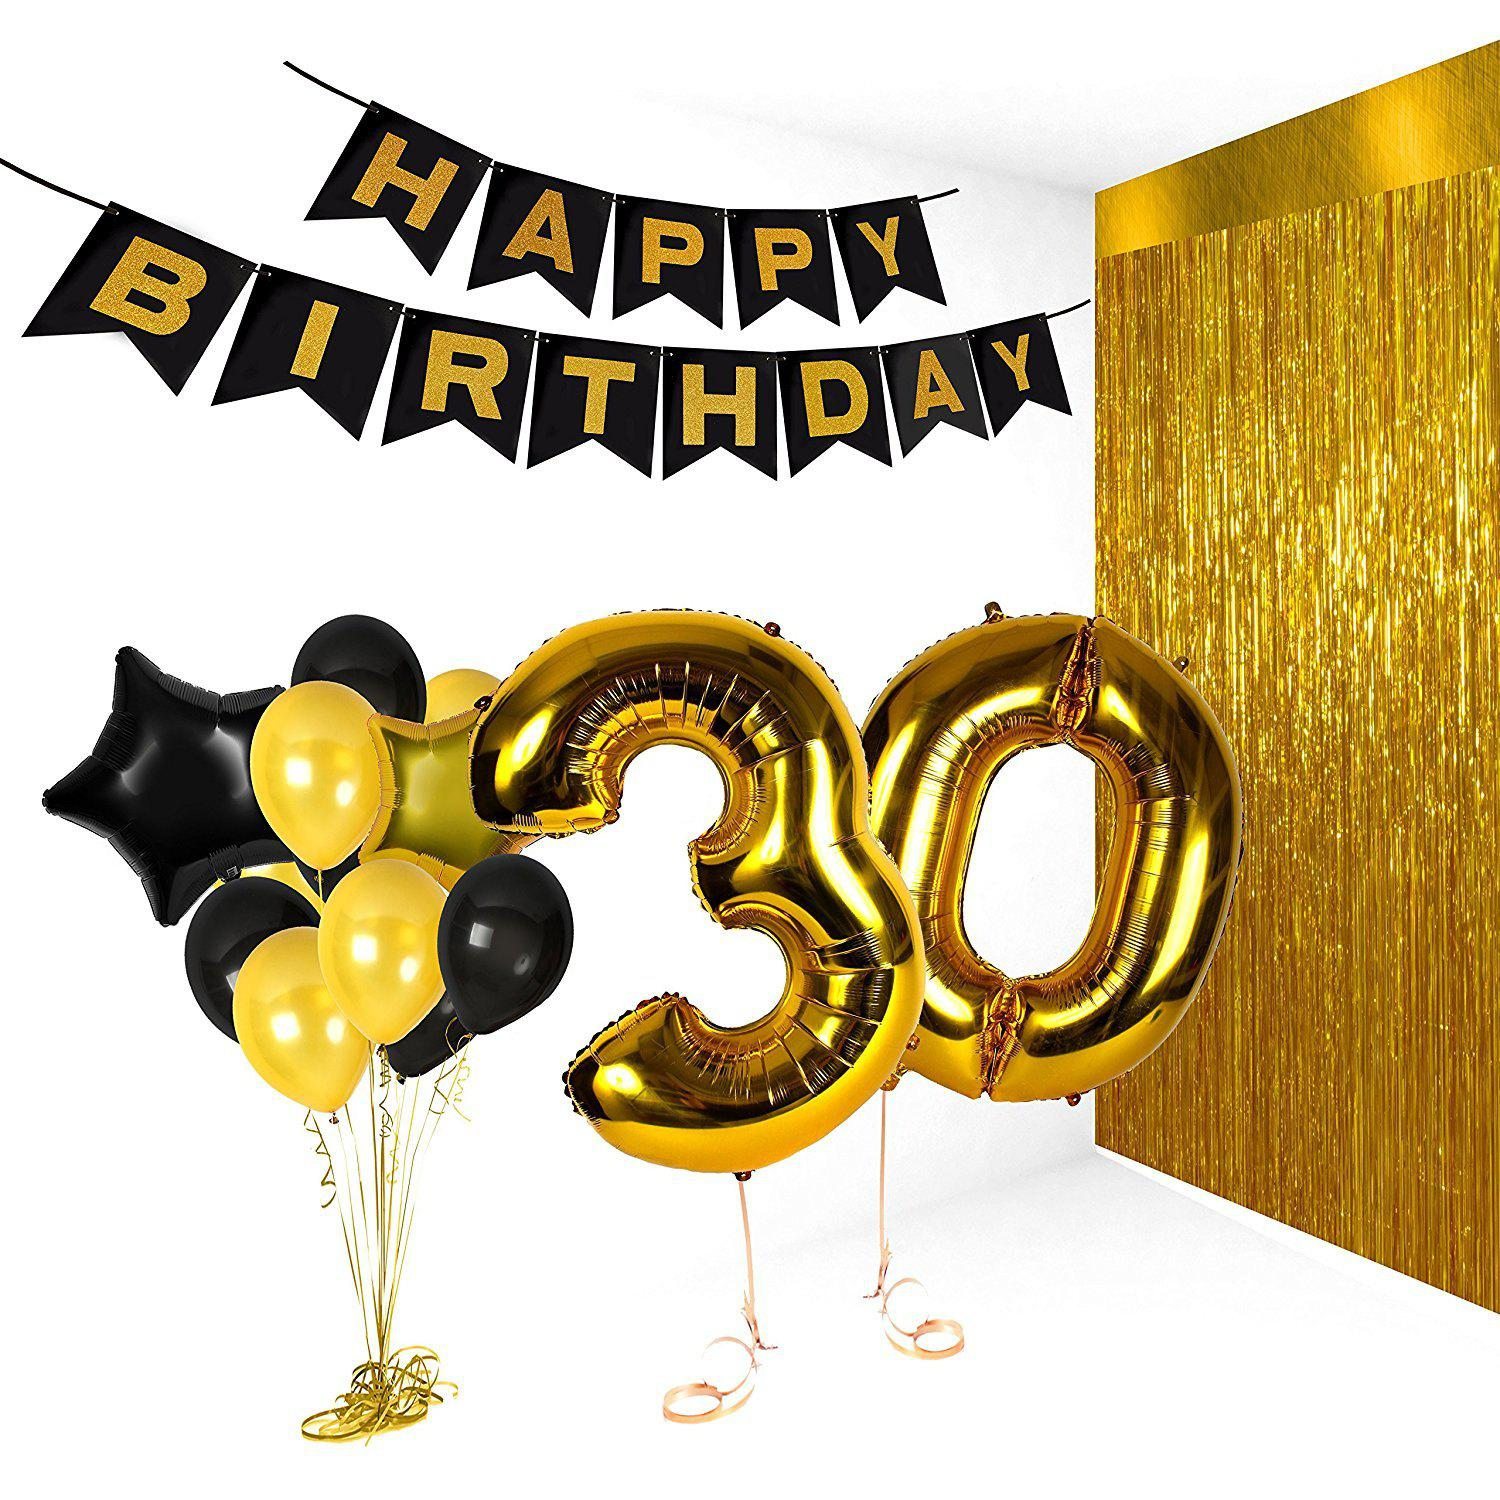 2018 EASTERN HOPE 30th Birthday Decorations Happy Bday Banner Party ...